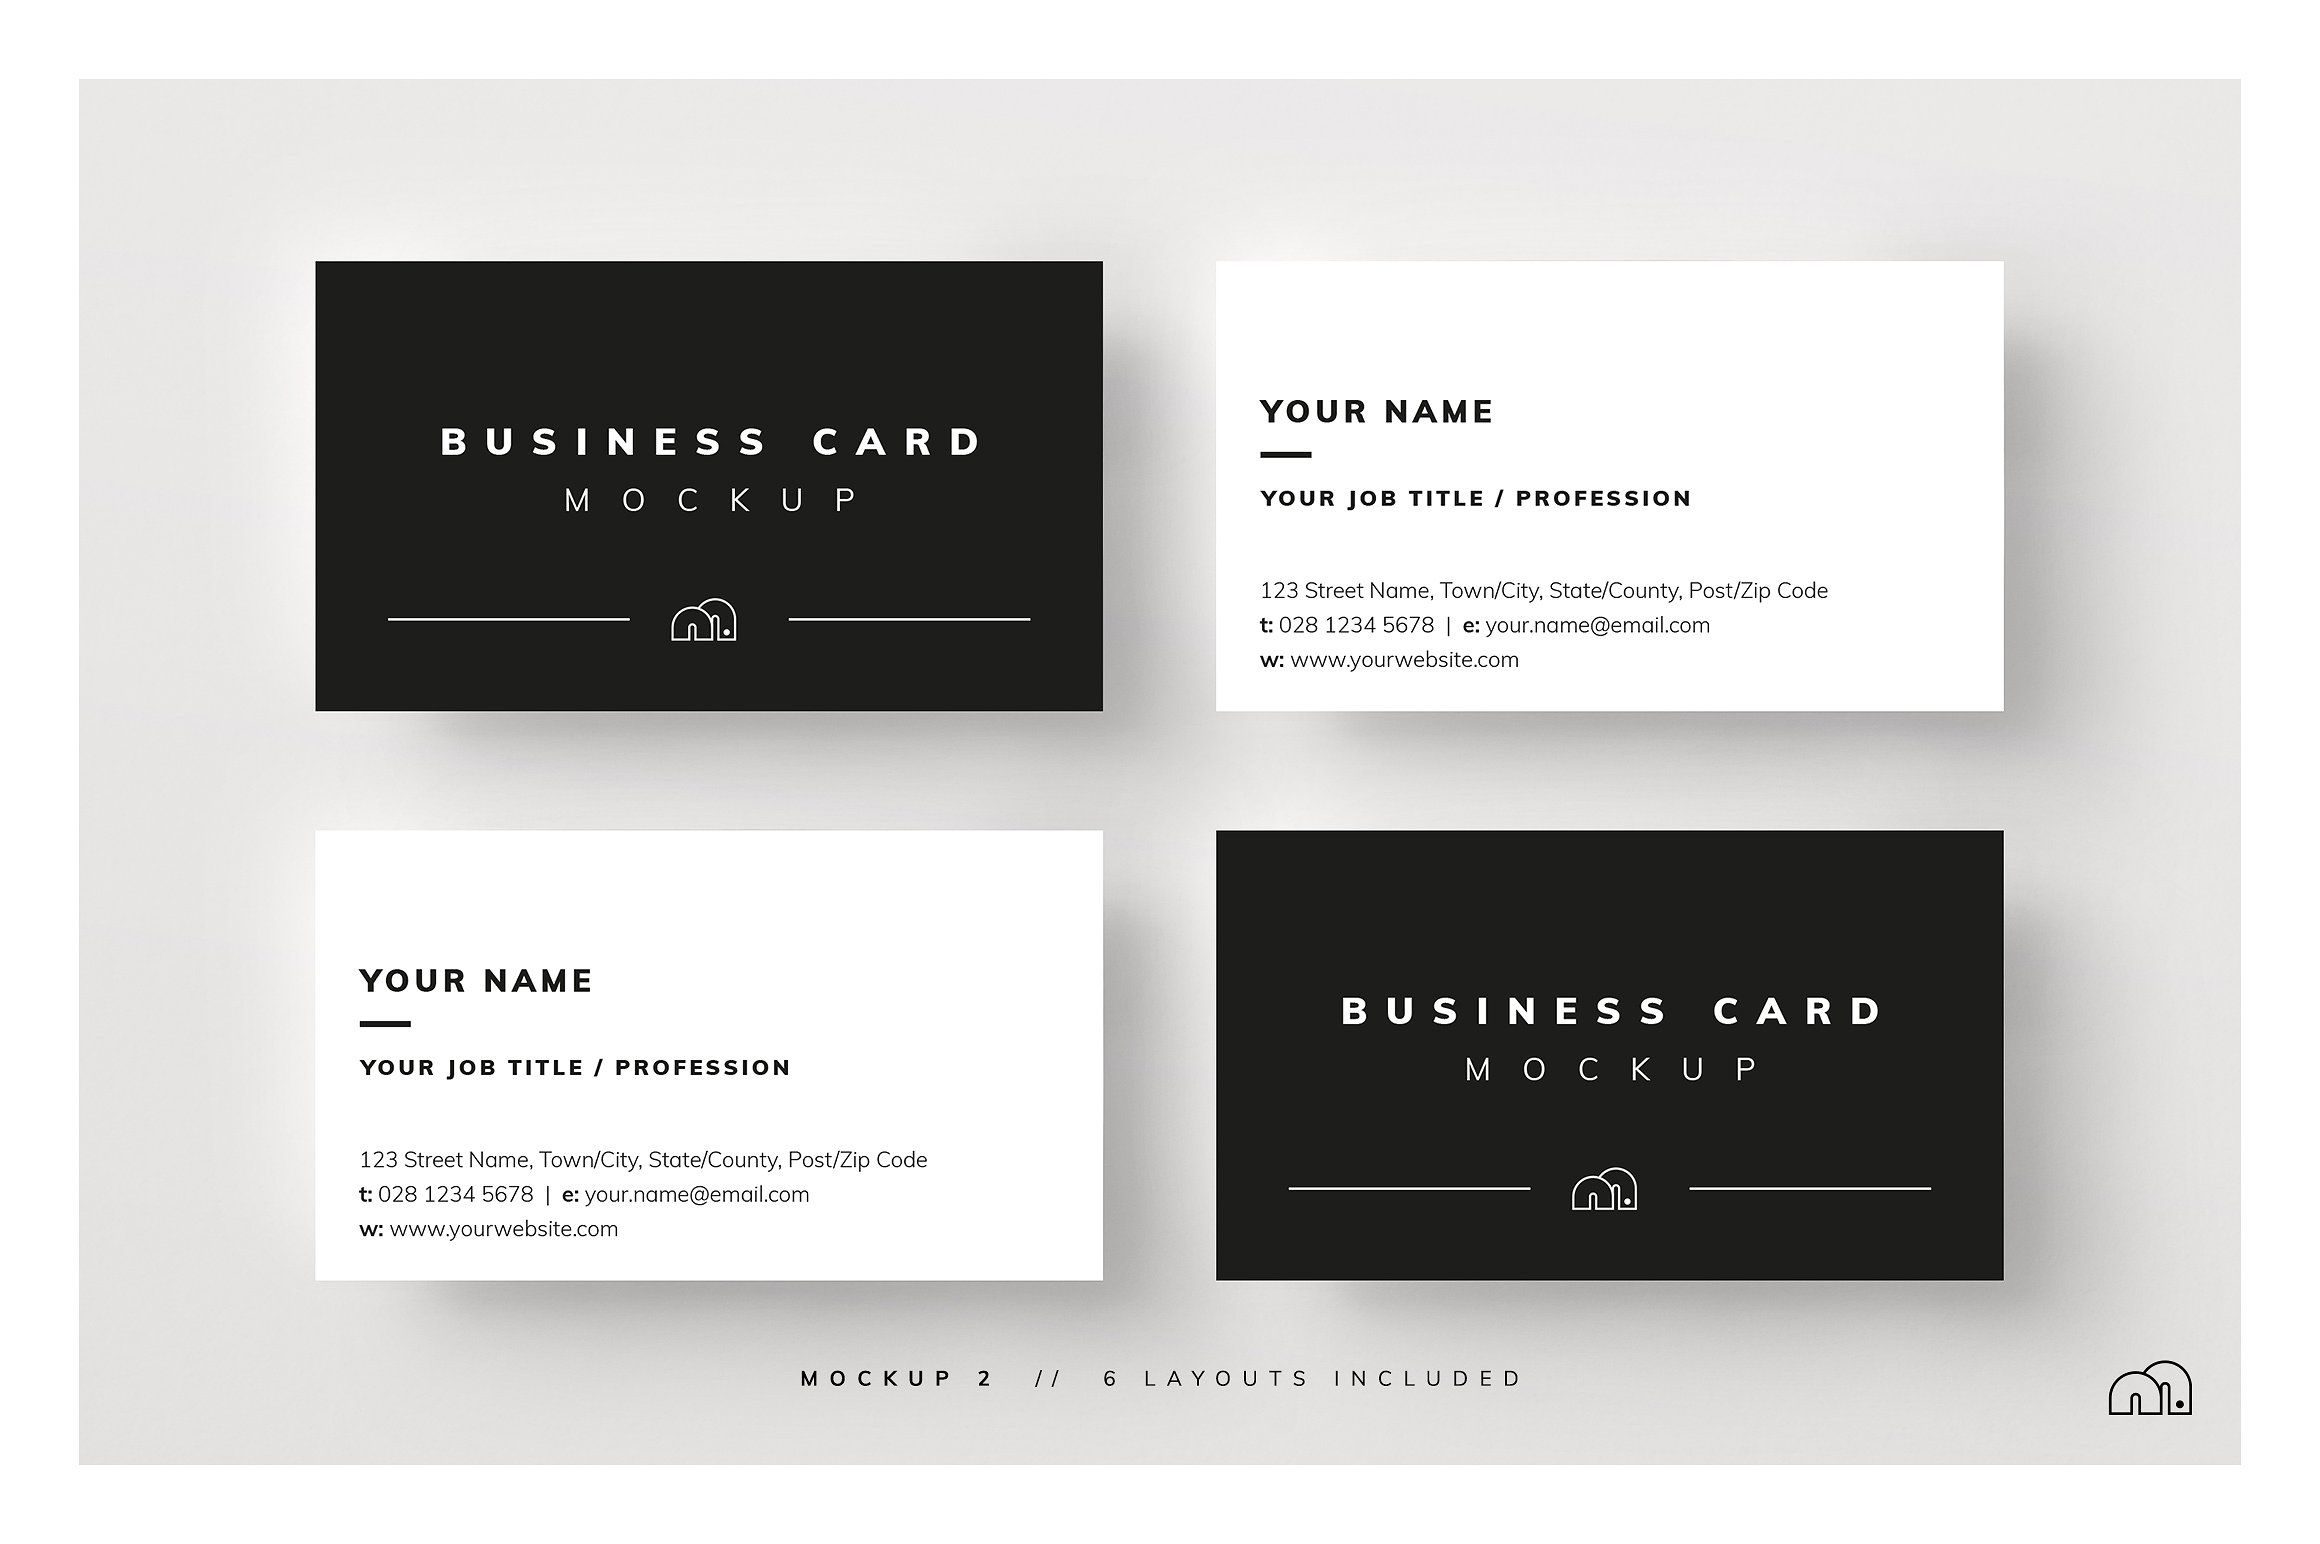 Business card mockup mock up business cards and template business card mockup by bilmaw creative on creativemarket professional and minimal business card presentation mockup templates these templates are packed colourmoves